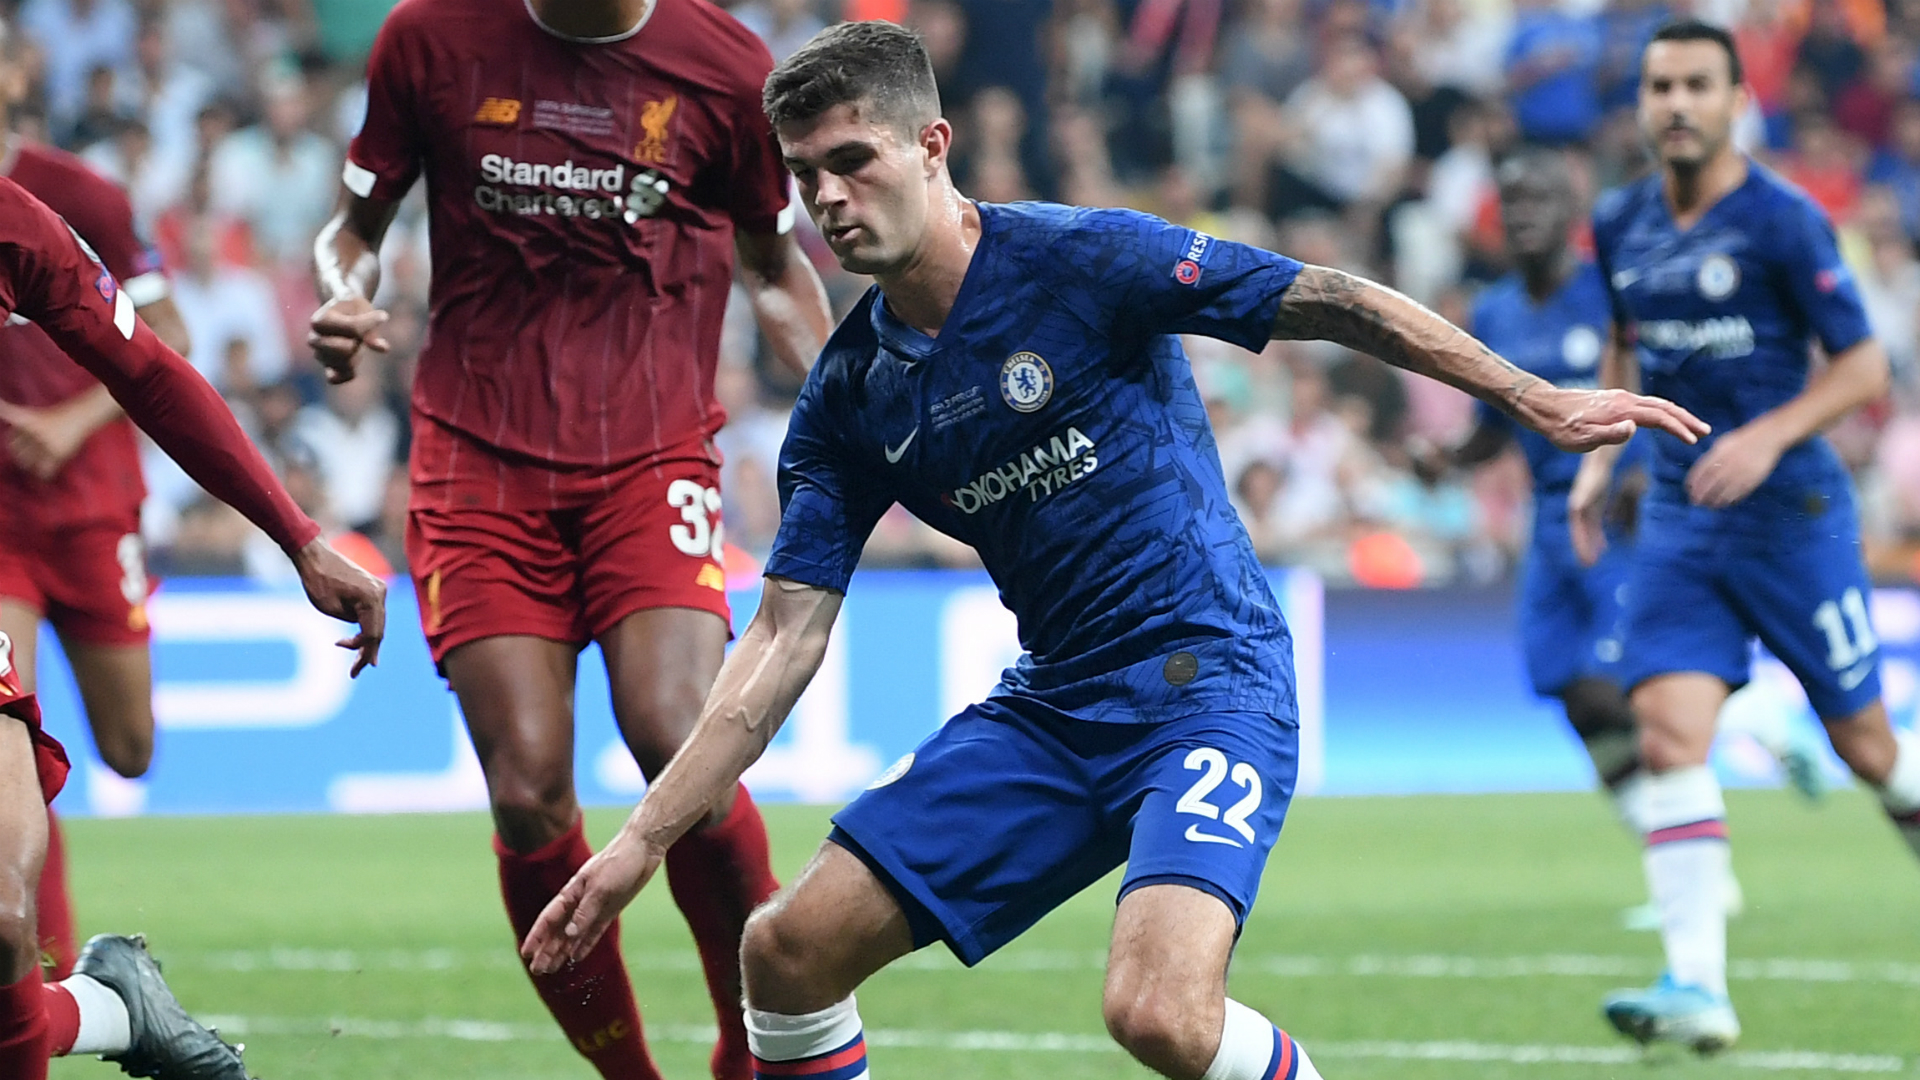 Lampard: Lots more to come from Chelsea's Pulisic